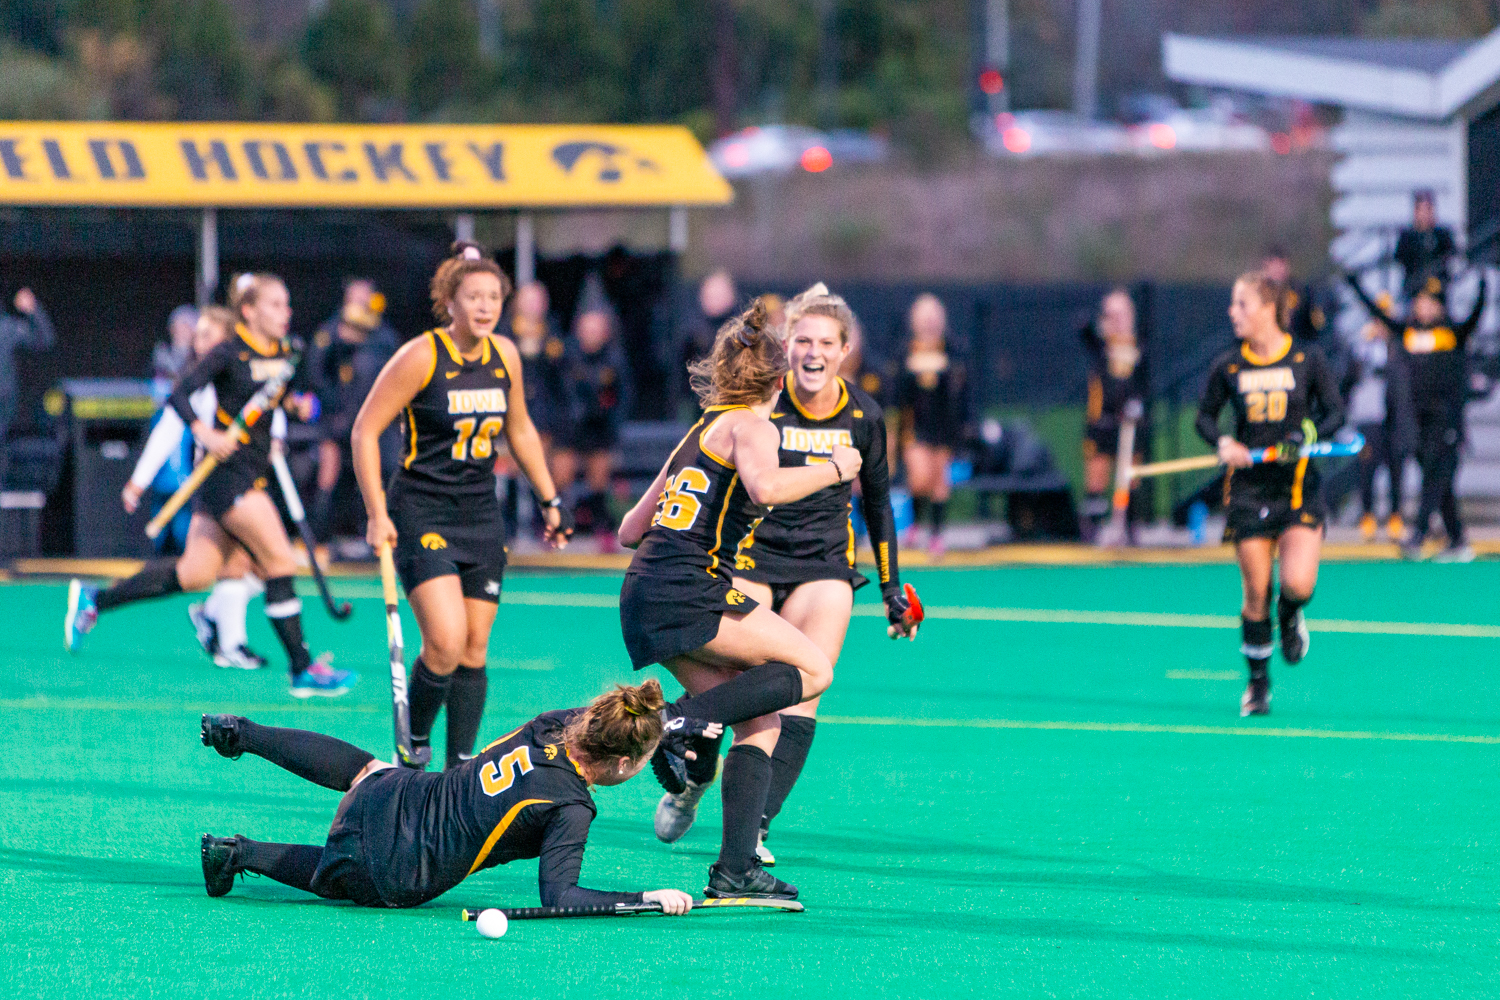 Iowa forward Maddy Murphy bowls over Iowa midfielder Meghan Conroy in celebration after scoring Murphy scored her third goal during a field hockey match against Penn State on Friday, Oct. 12, 2018. The no. 8 ranked Hawkeyes defeated the no. 6 ranked Nittany Lions, 3-2. (David Harmantas/The Daily Iowan)